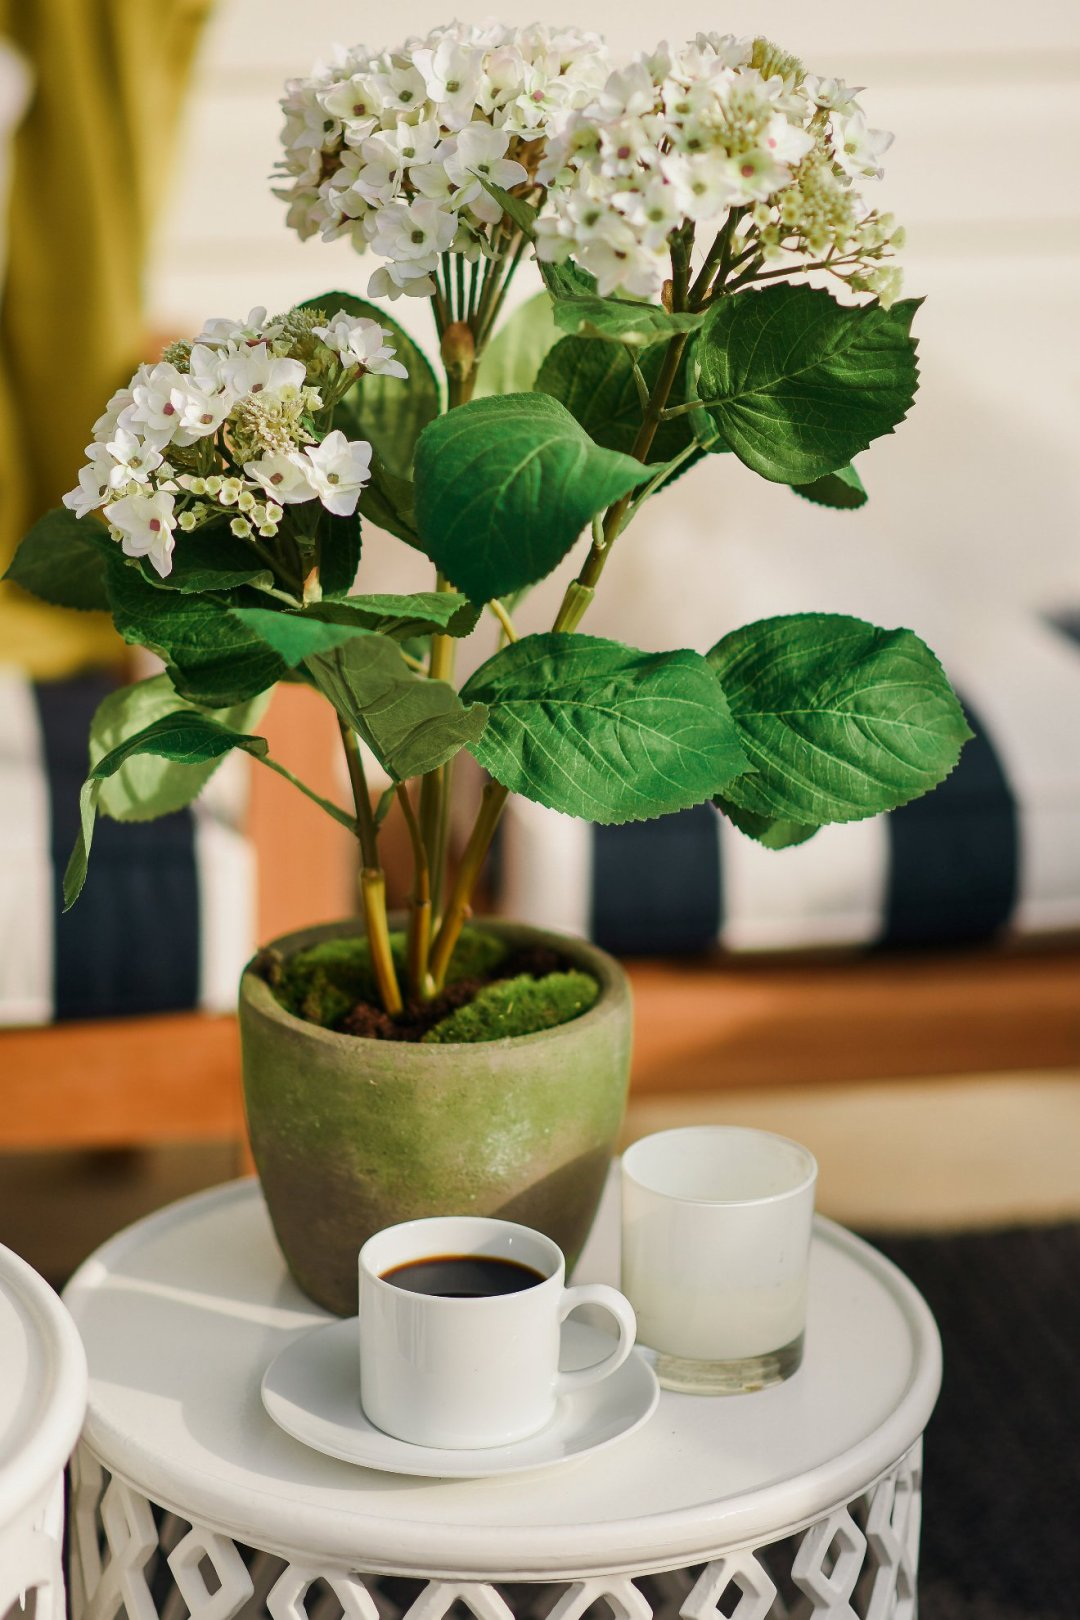 Close up of hydrangea plat, coffee in cup, and candle on top of white table